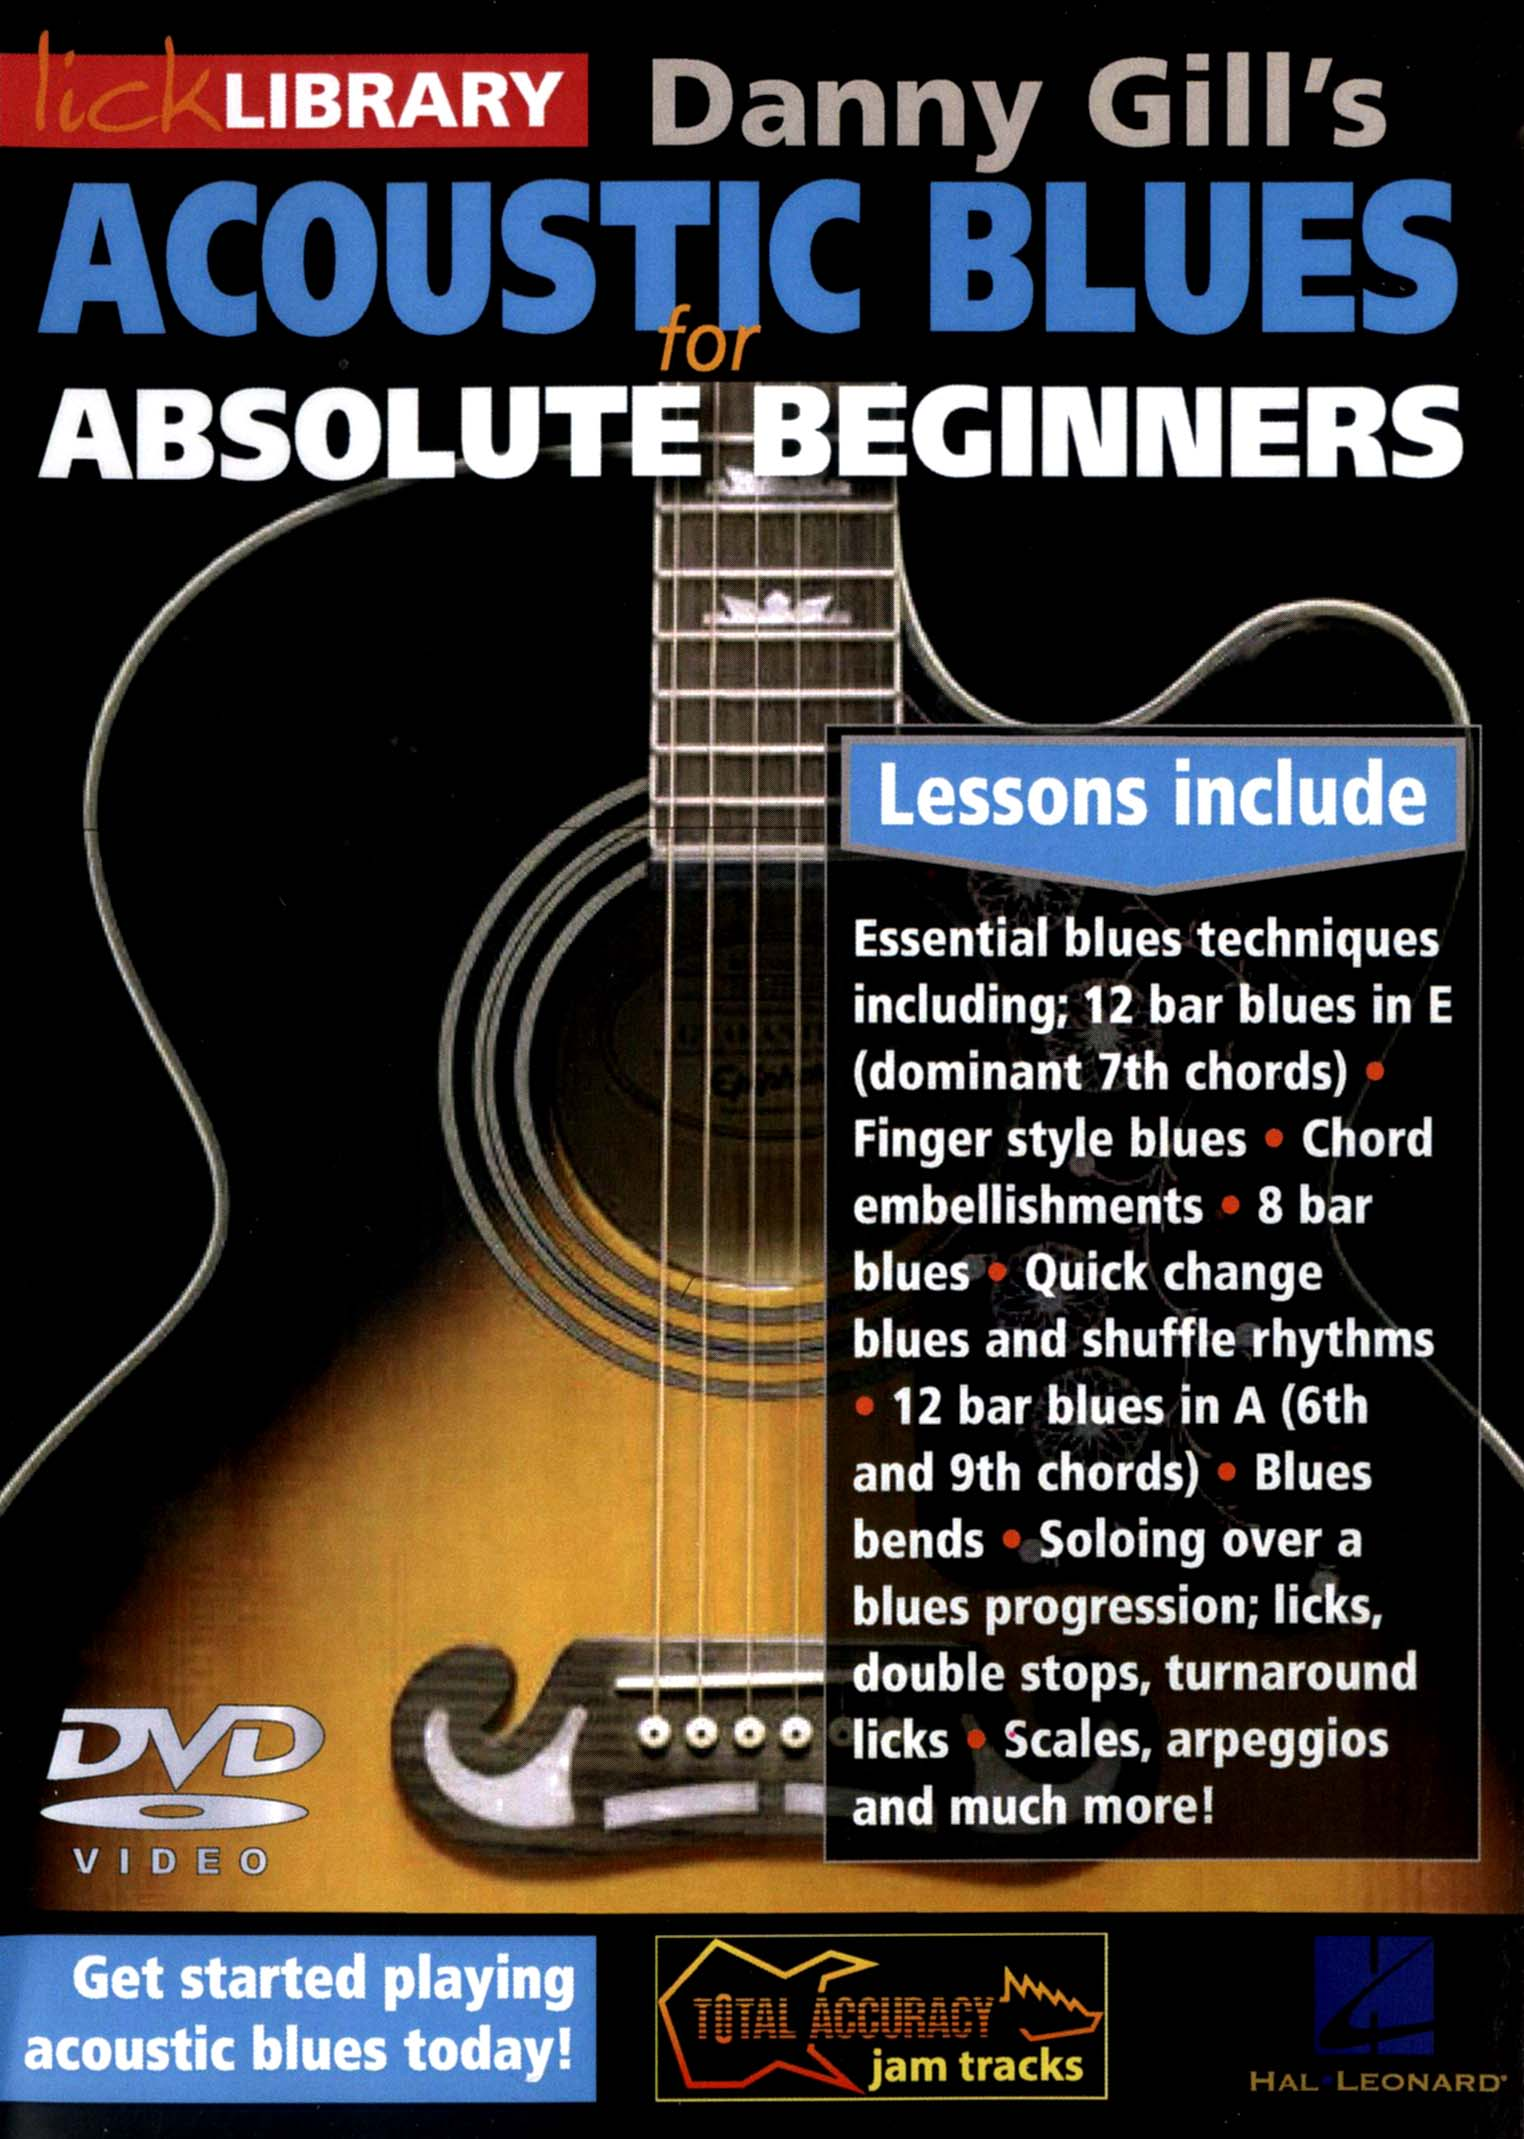 Lick Library: Danny Gill's Acoustic Blues for Absolute Beginners